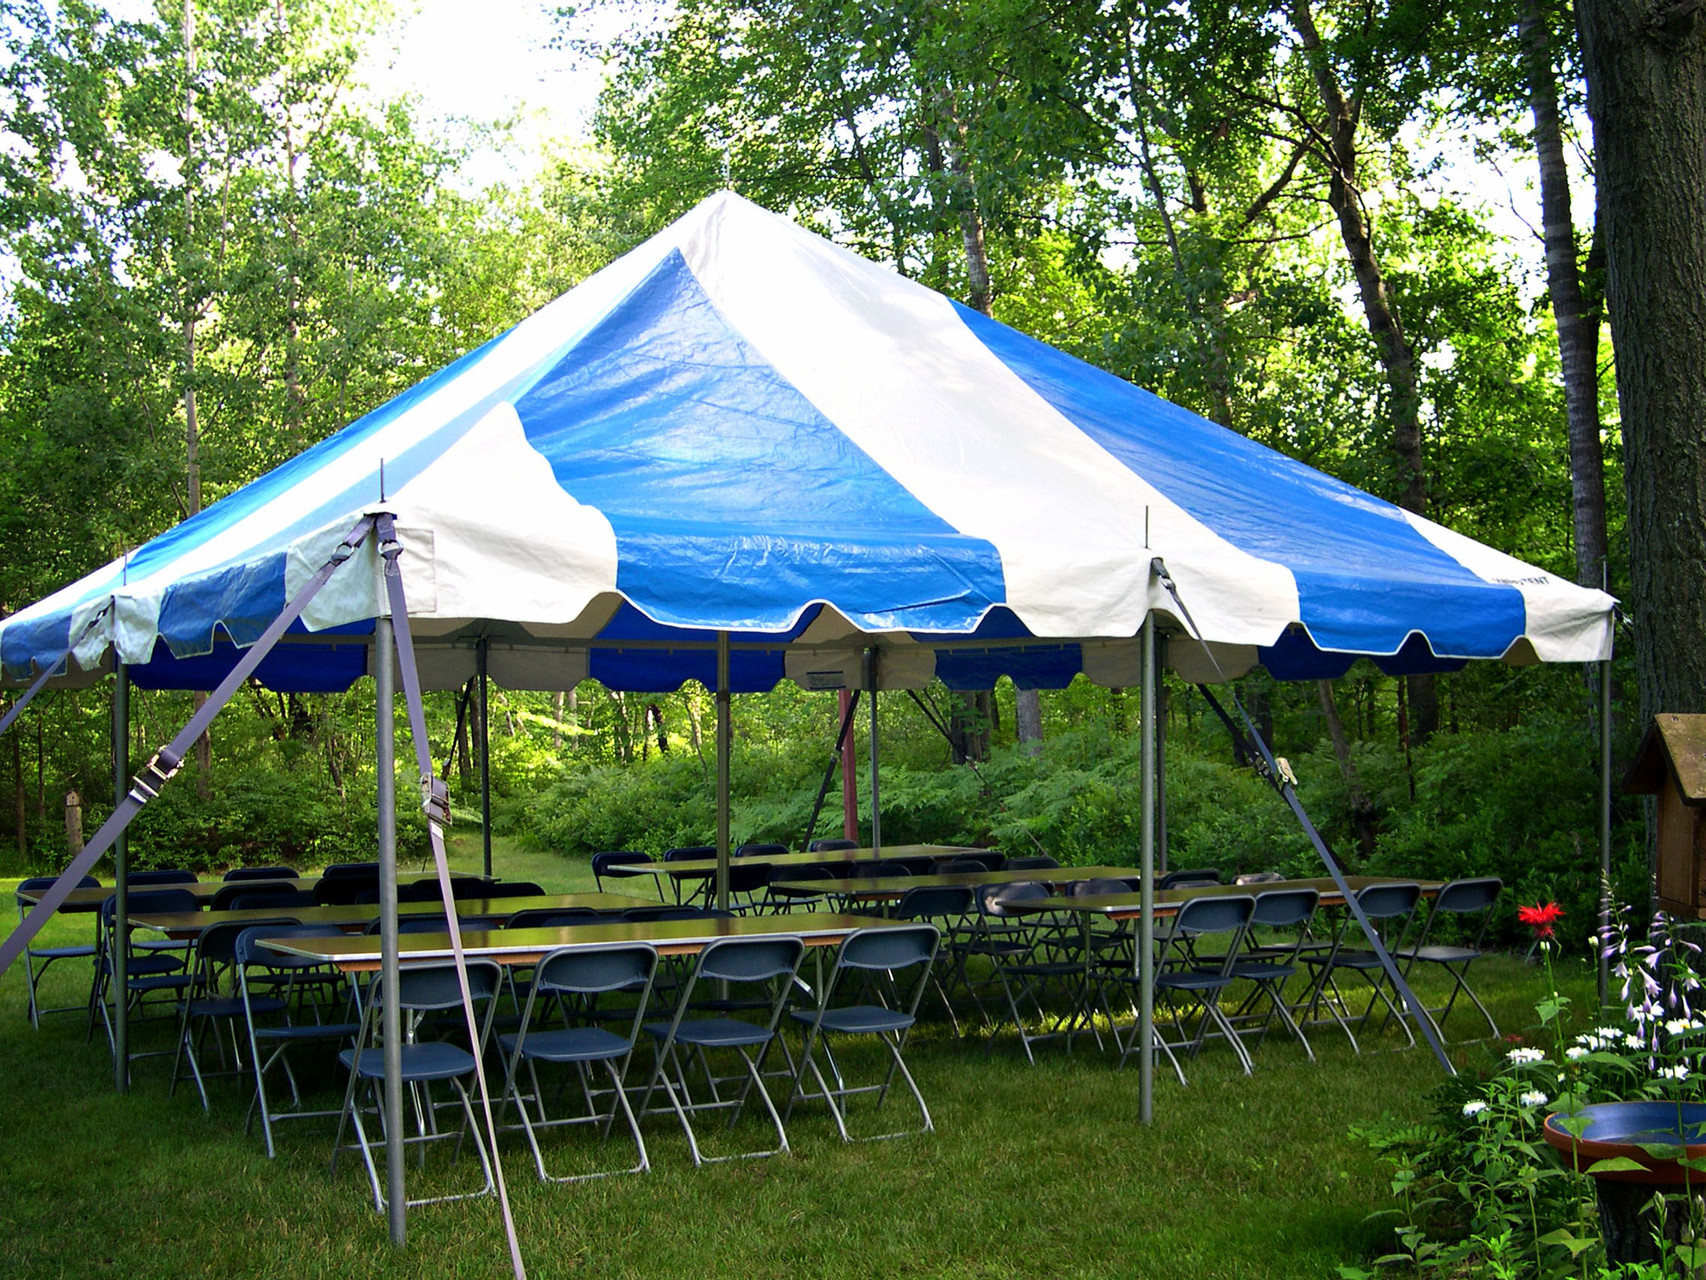 20 x 20 Pole tent with 6 tables and 48 chairs